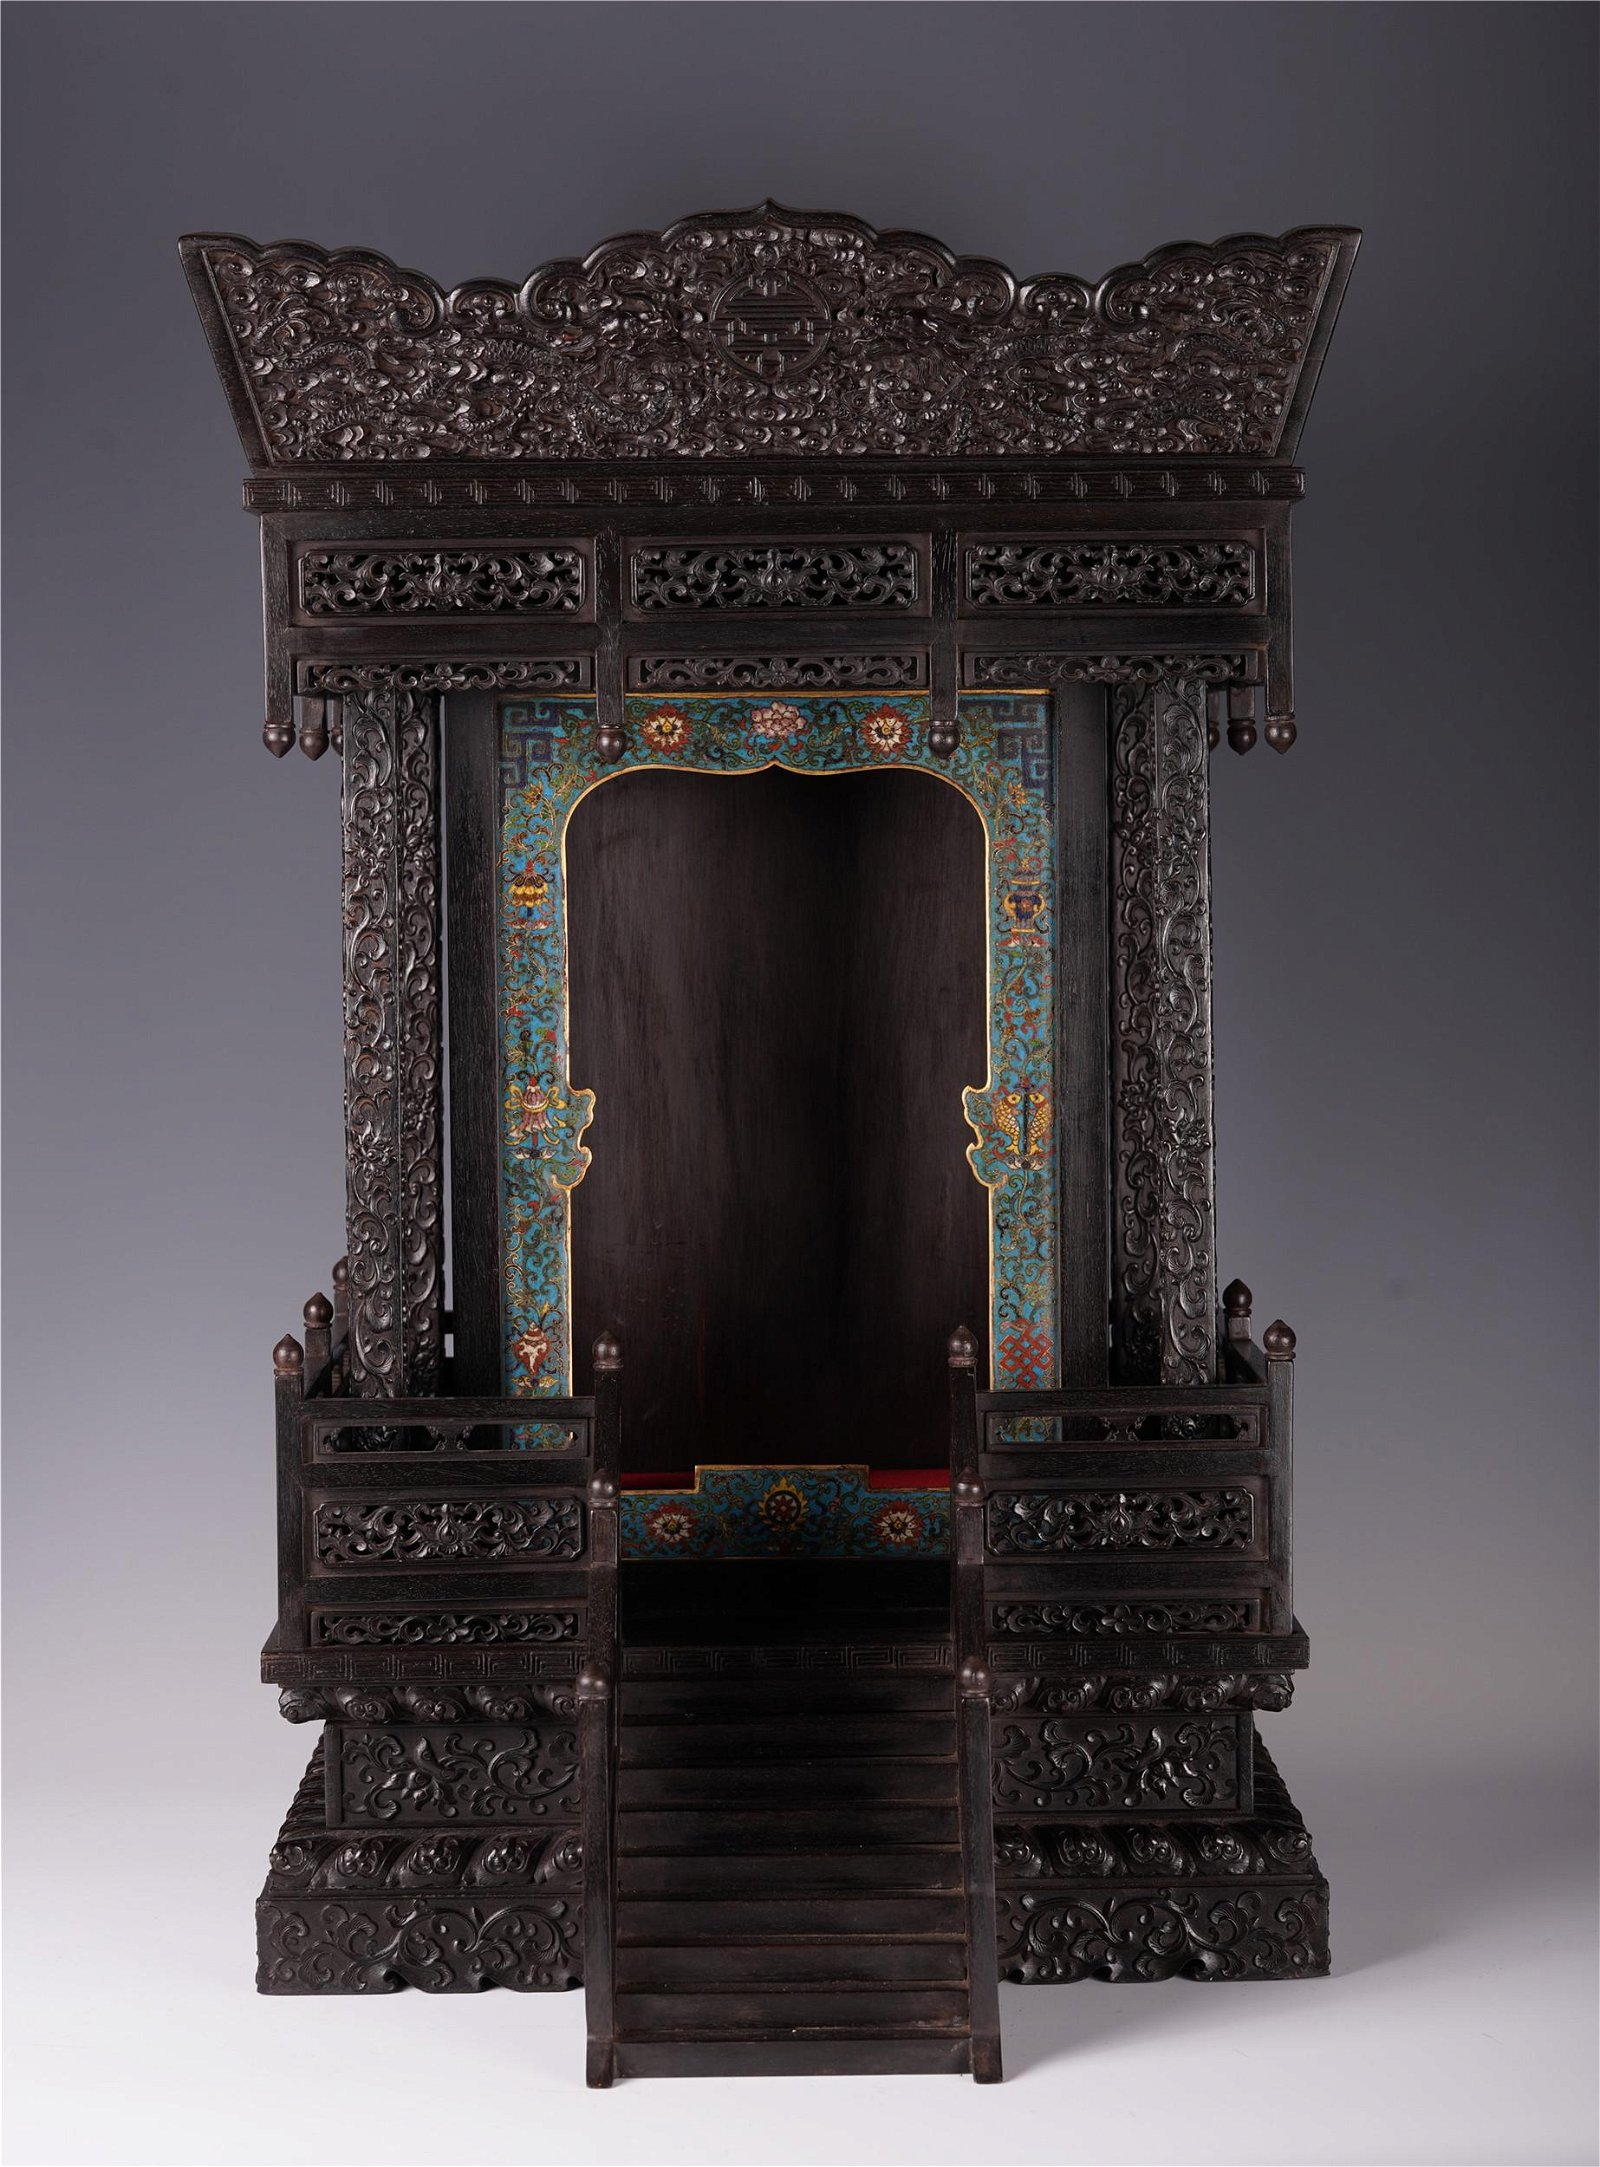 CHINESE ROSEWOOD CARVED DRAGON PATTERN NICHE